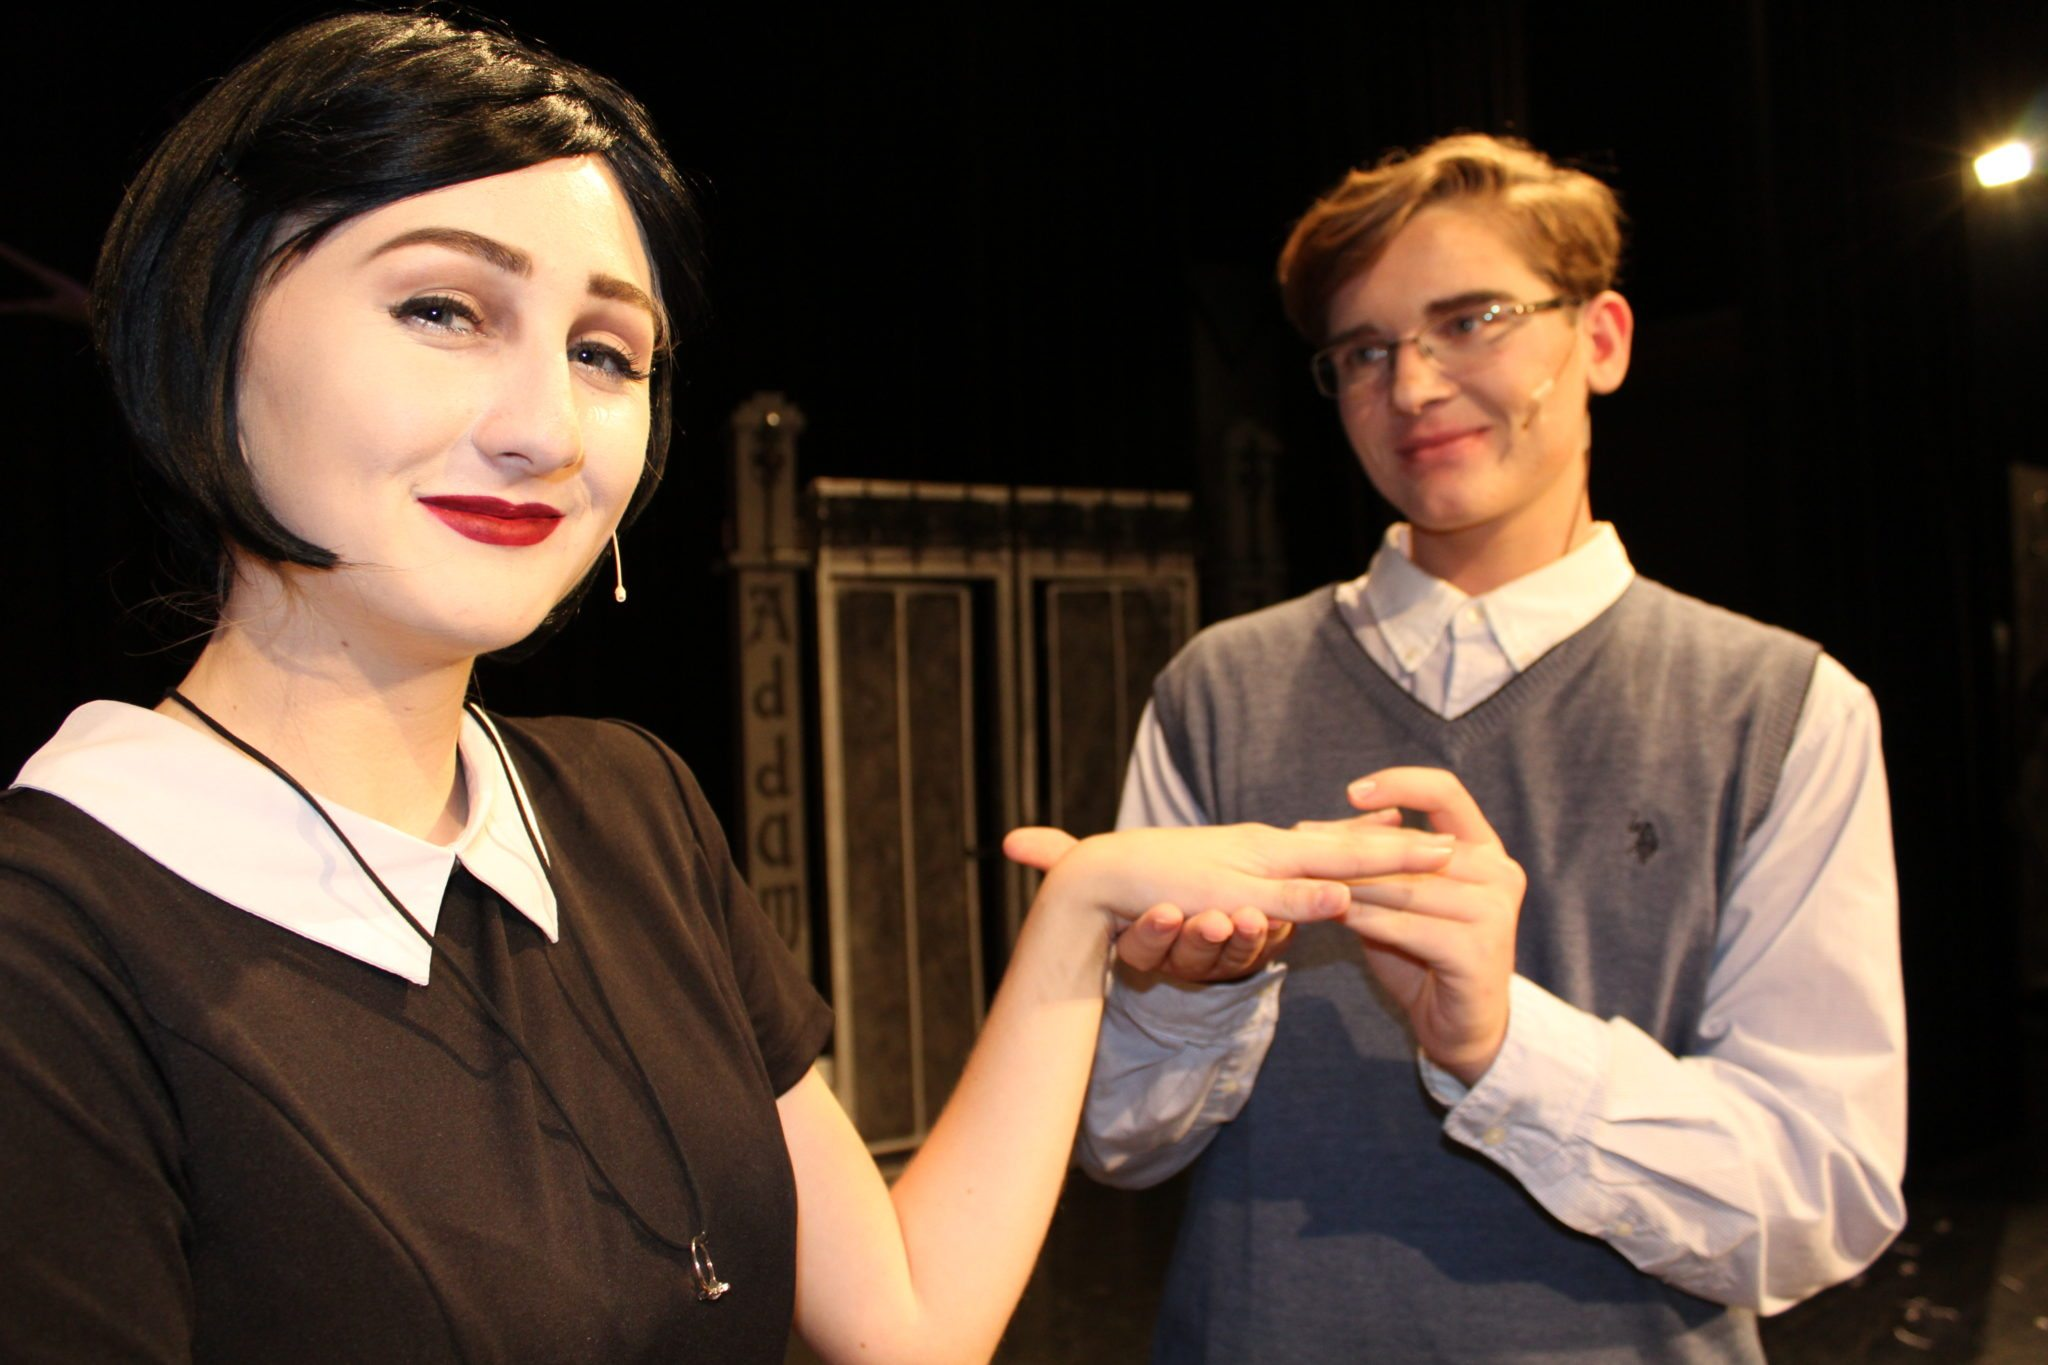 Ariana Patterson and Aaron Tipsword are star-crossed lovers in this musical.